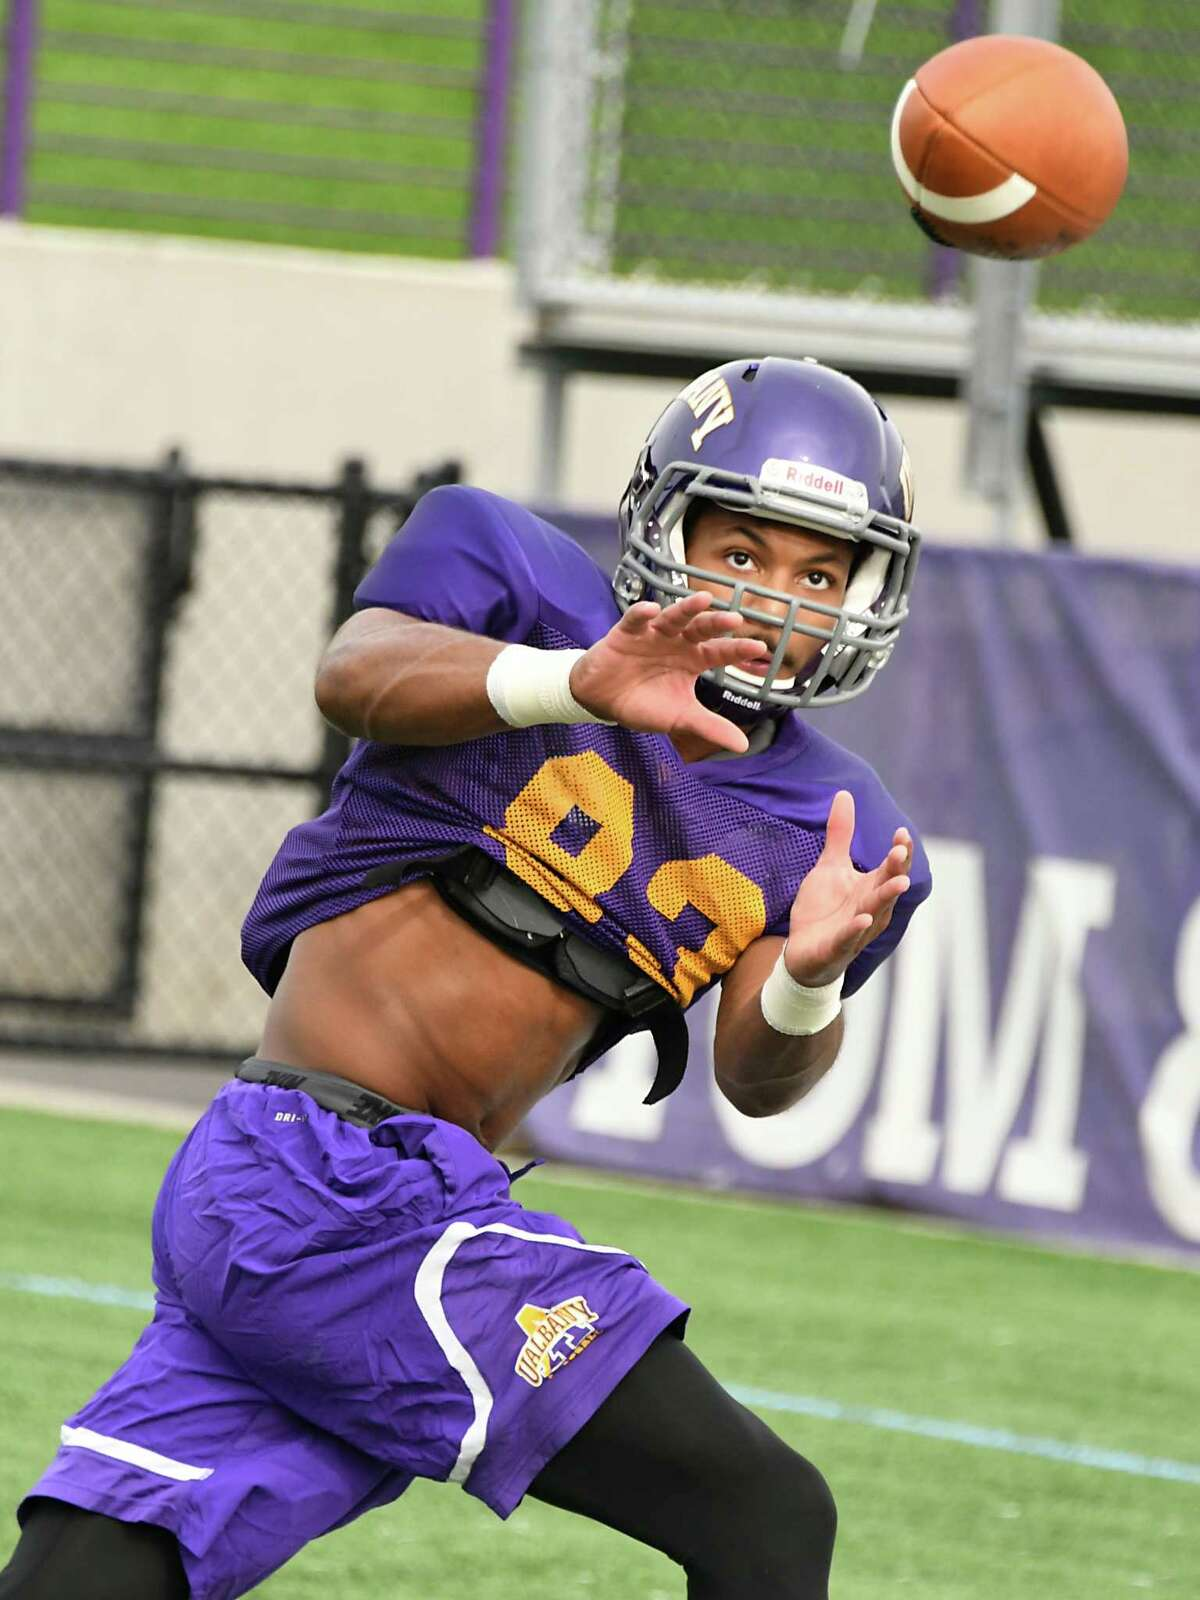 University at Albany wide receiver Donovan McDonald (No. 83) catches a pass during practice at Casey Stadium on Wednesday, Sept. 20, 2017 in Albany, N.Y. (Lori Van Buren / Times Union)